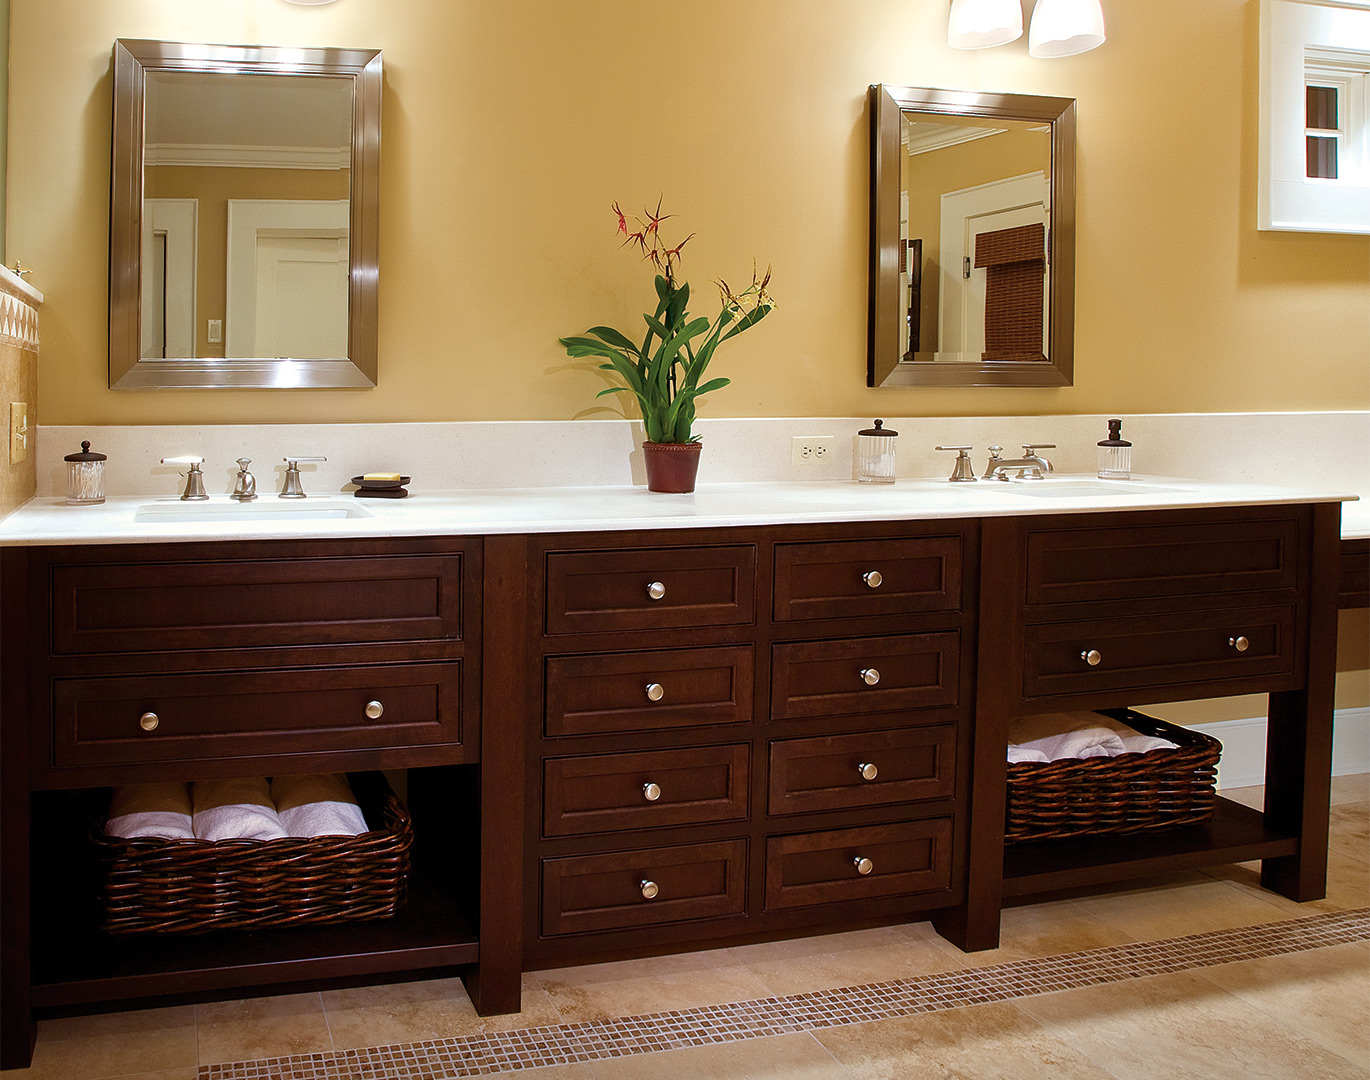 Anatolia Interiors Fairfield Connecticut - Bathroom remodeling norwalk ct